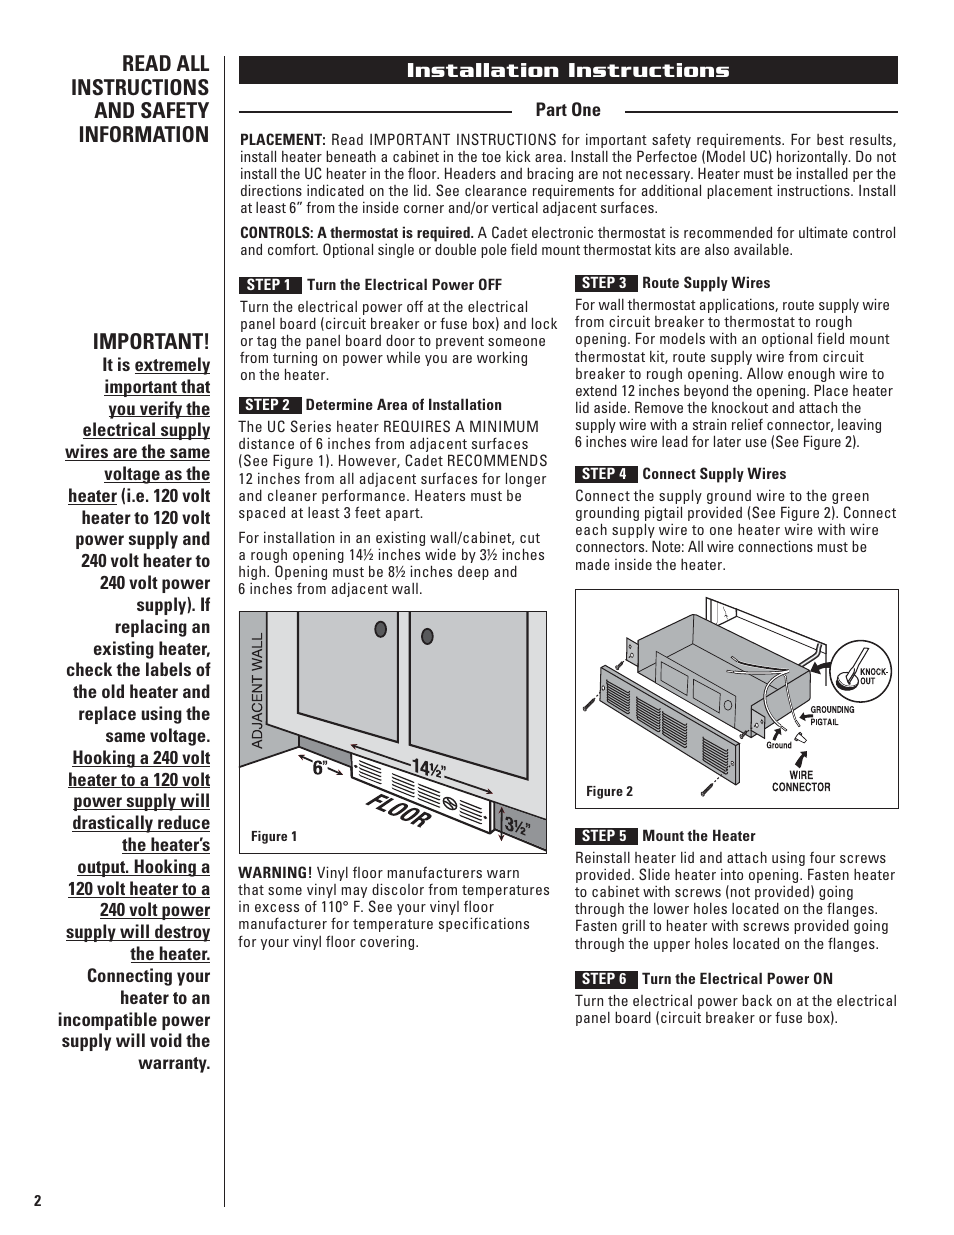 Installation instructions | Cadet THE PERFECTOE UC102 User Manual | Page 2  / 8